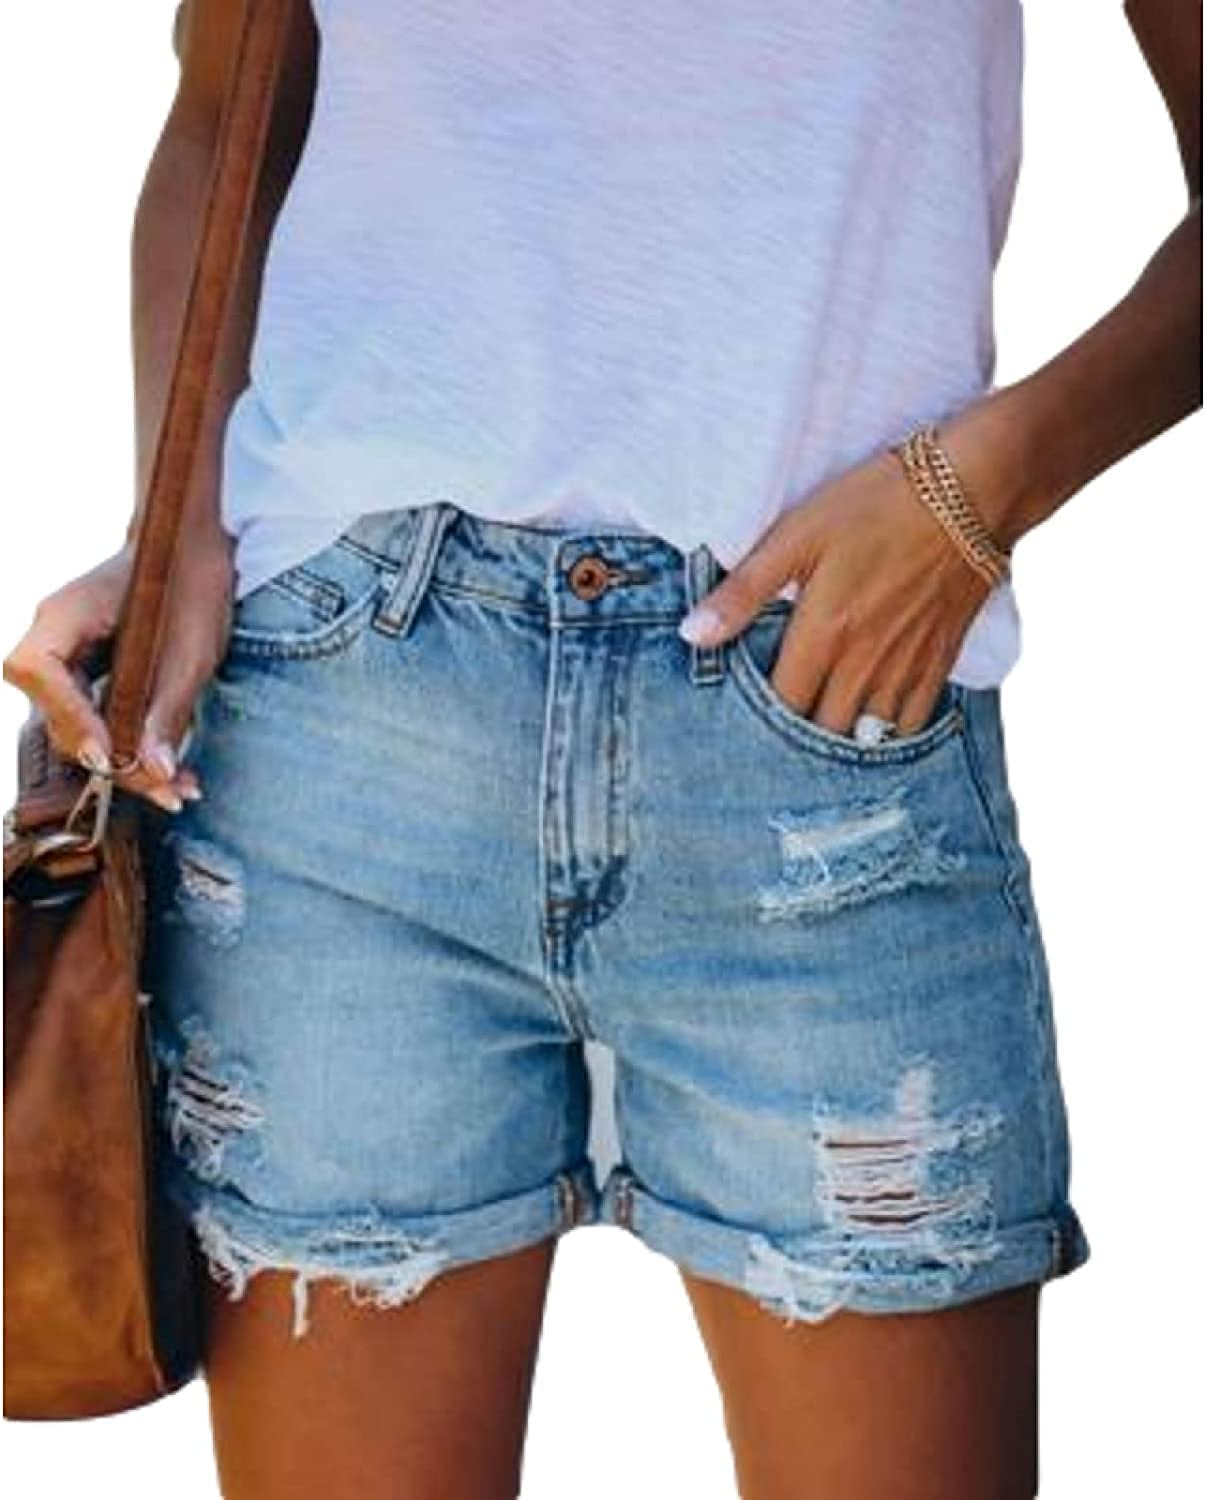 Women's Ripped Washed Denim Shorts Fashion All-Match Streetwear Trend Crimping